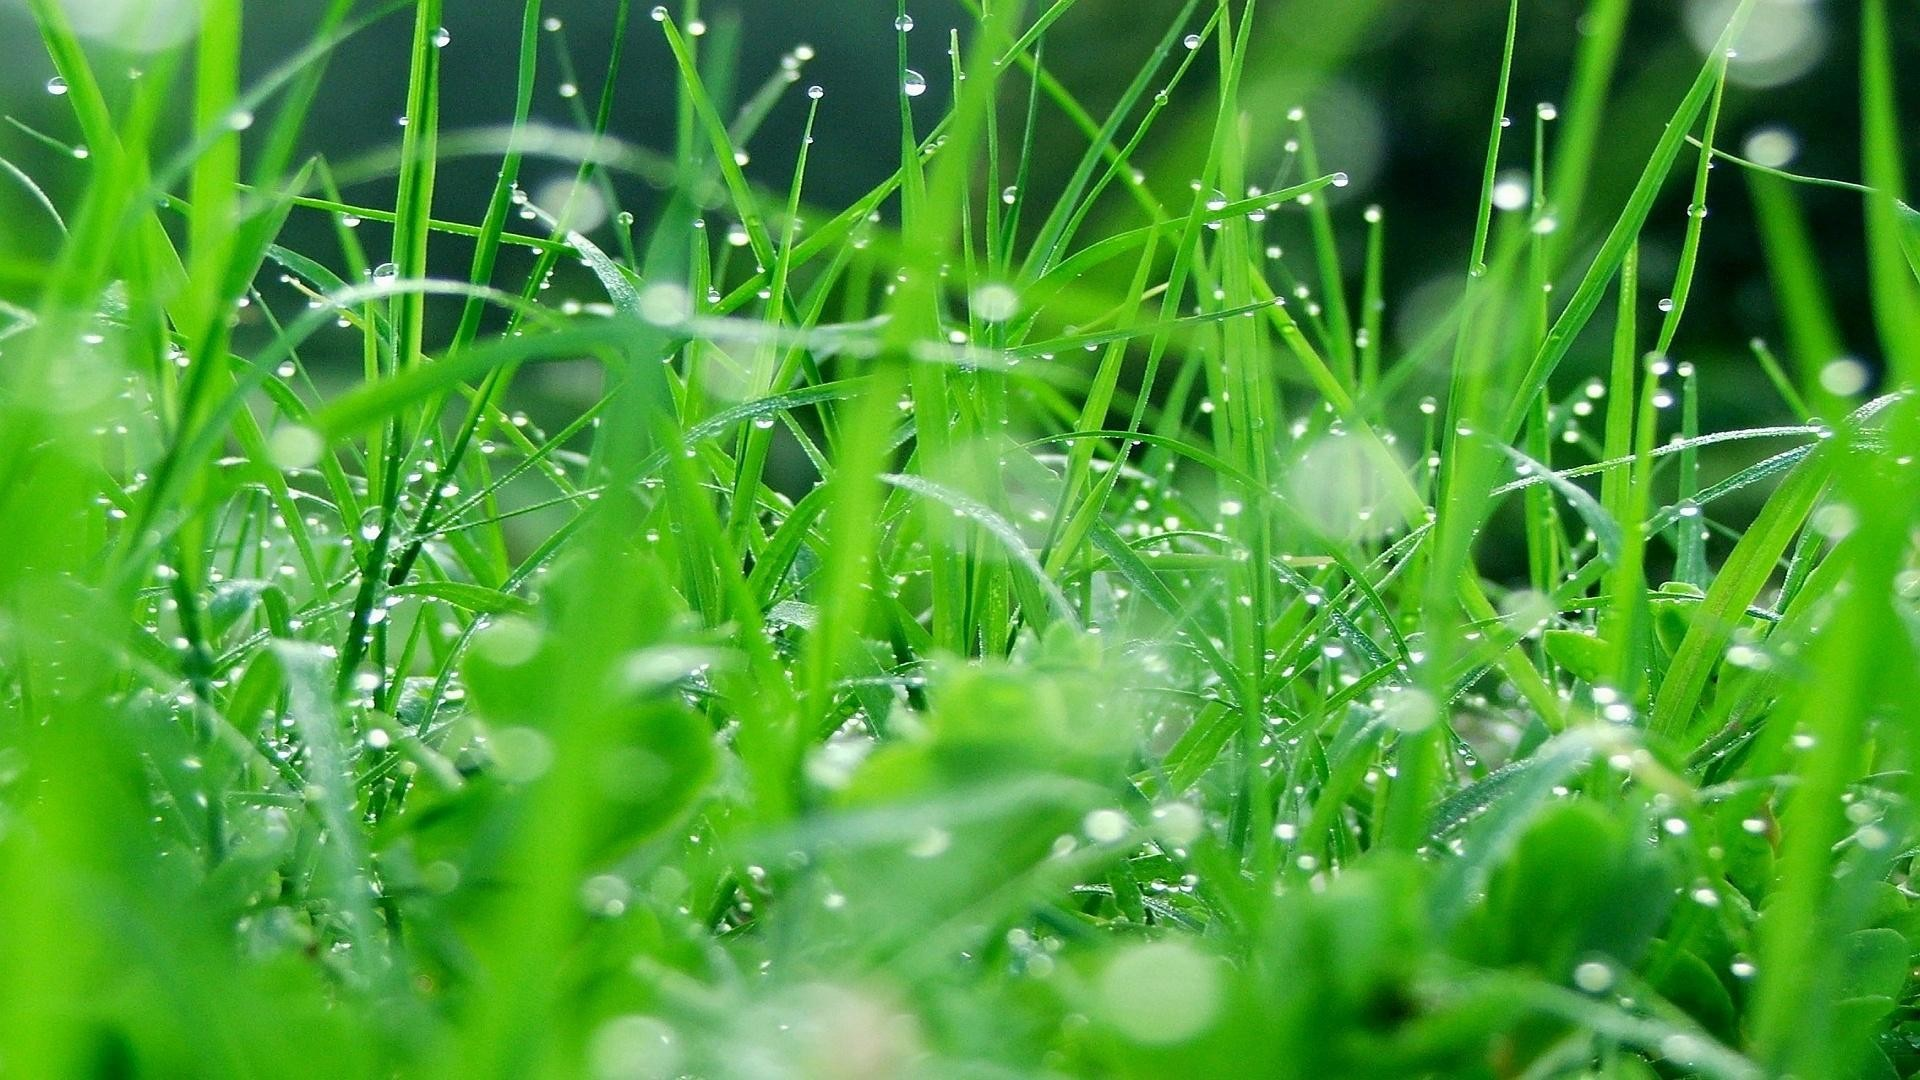 Hd Grass Wallpaper 75 Pictures